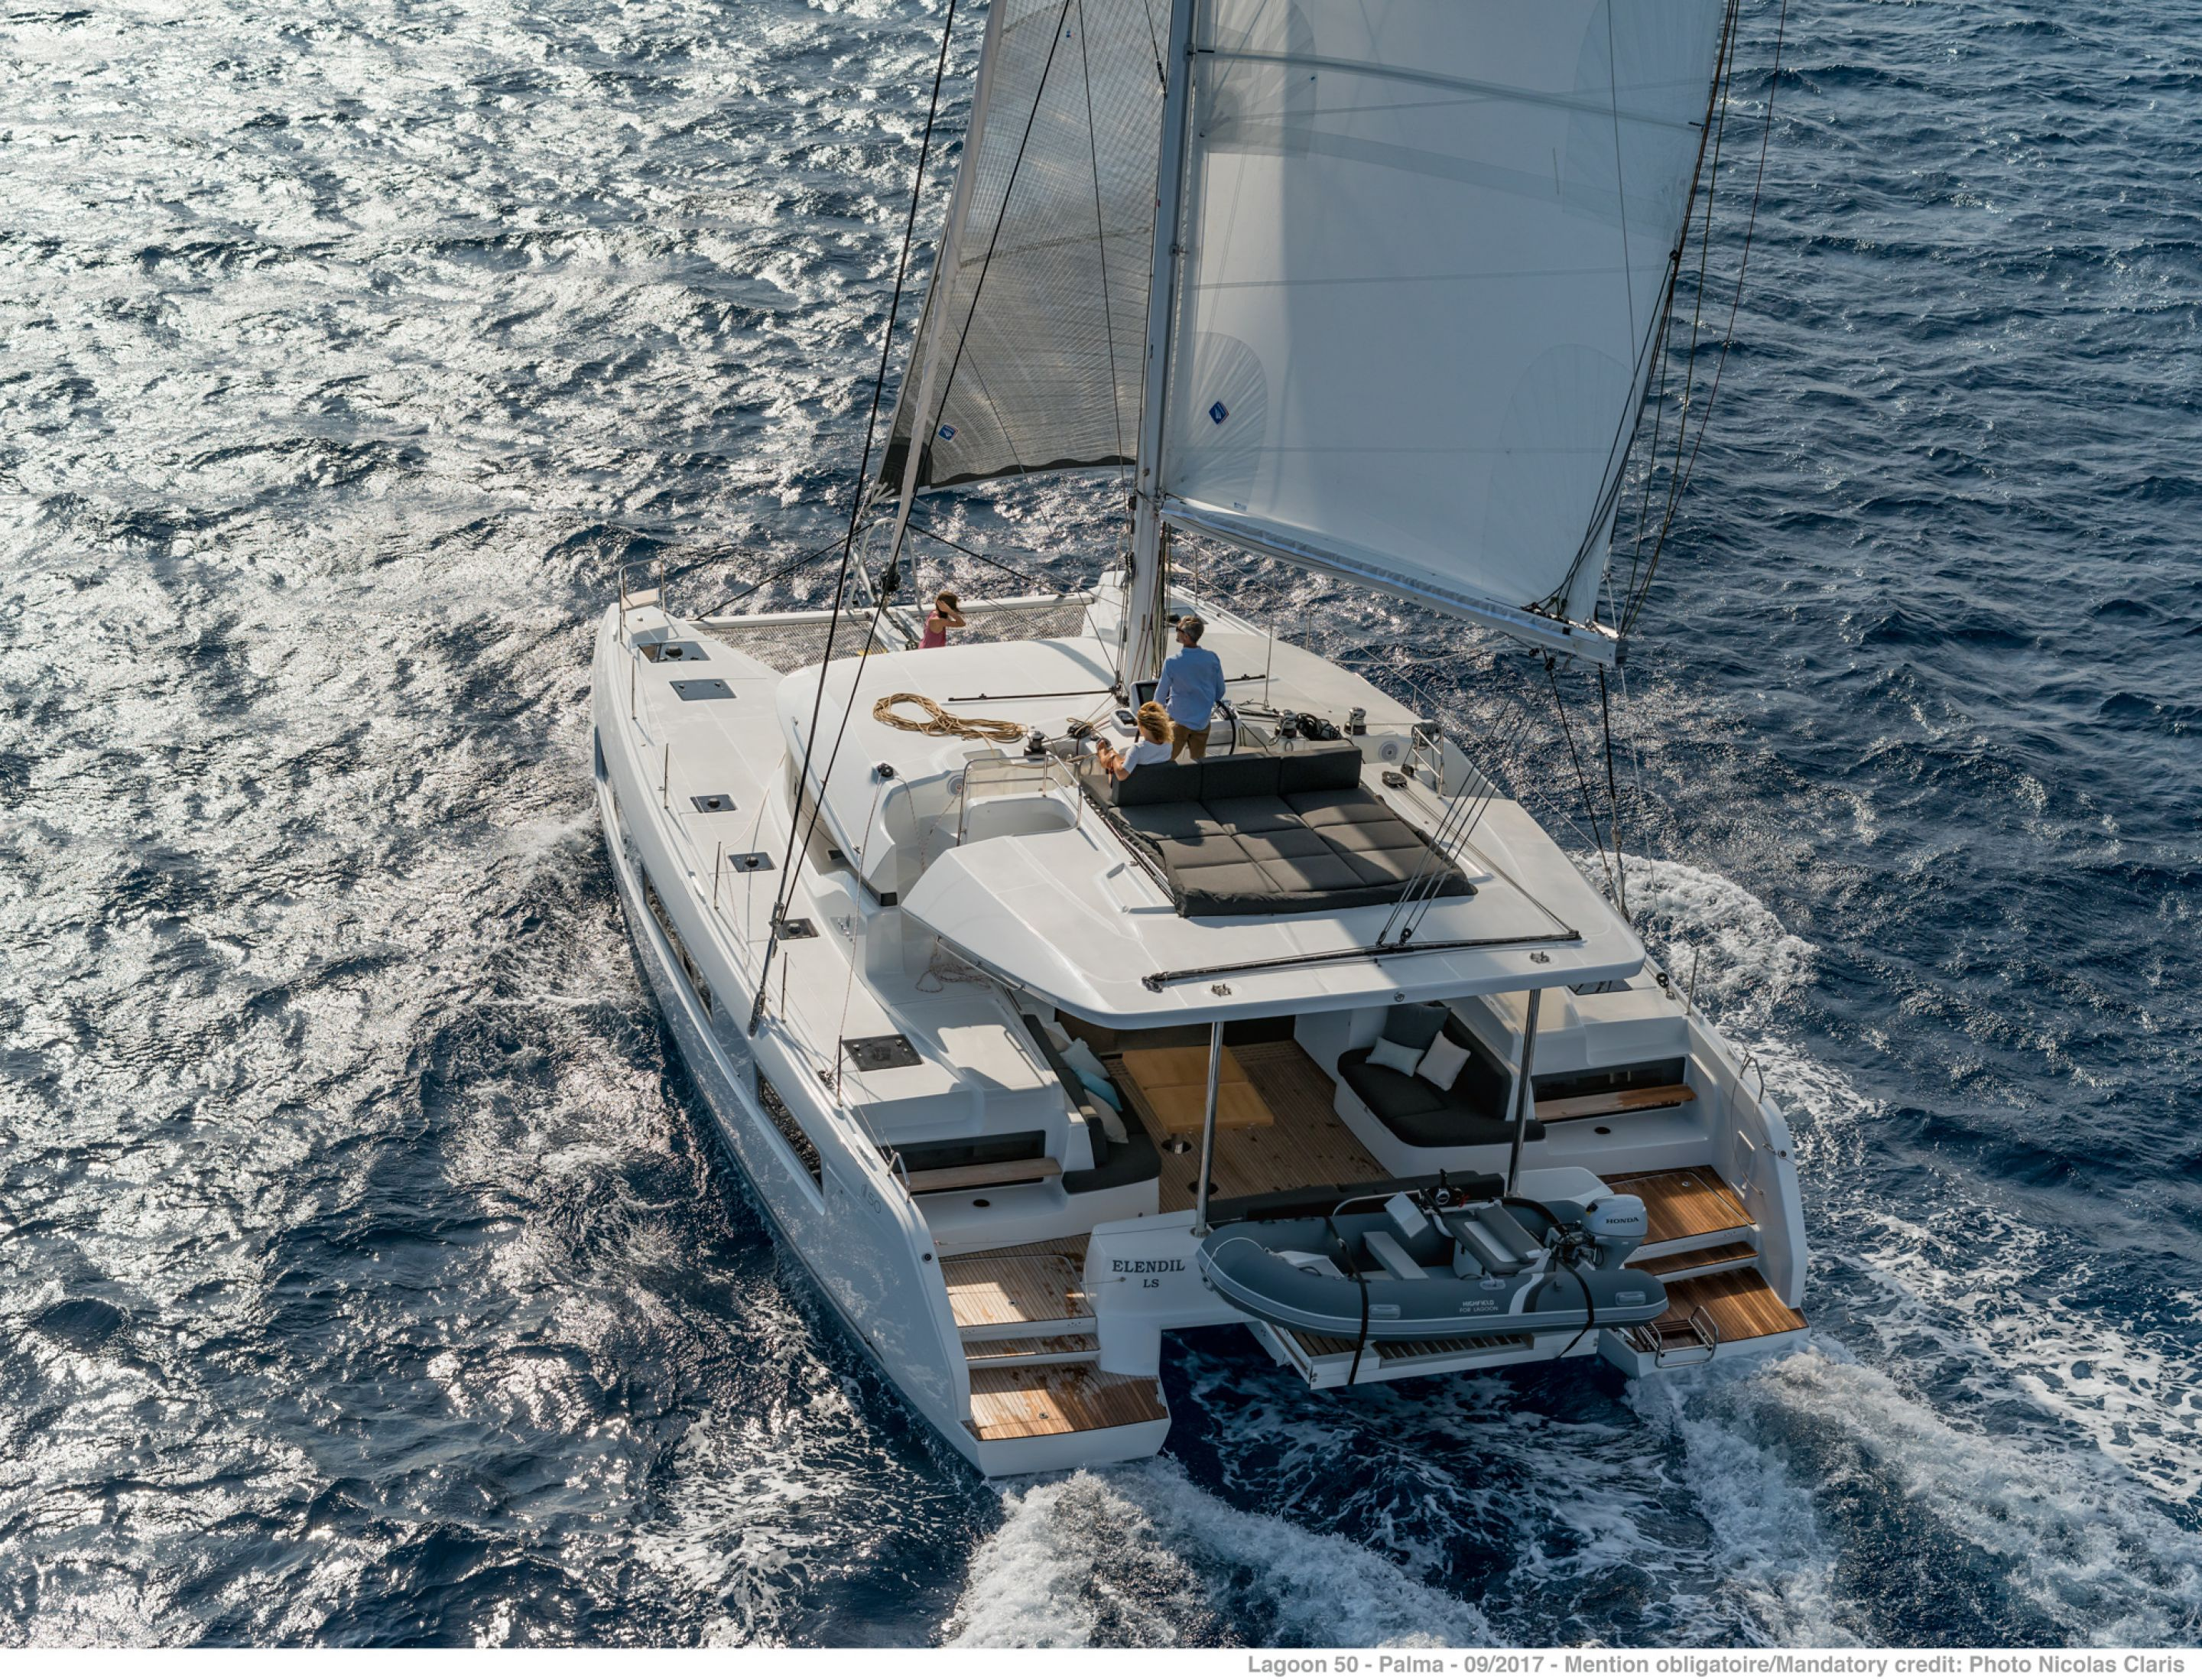 Lagoon Catamaran: sale, rental, catamaran and luxurious yacht